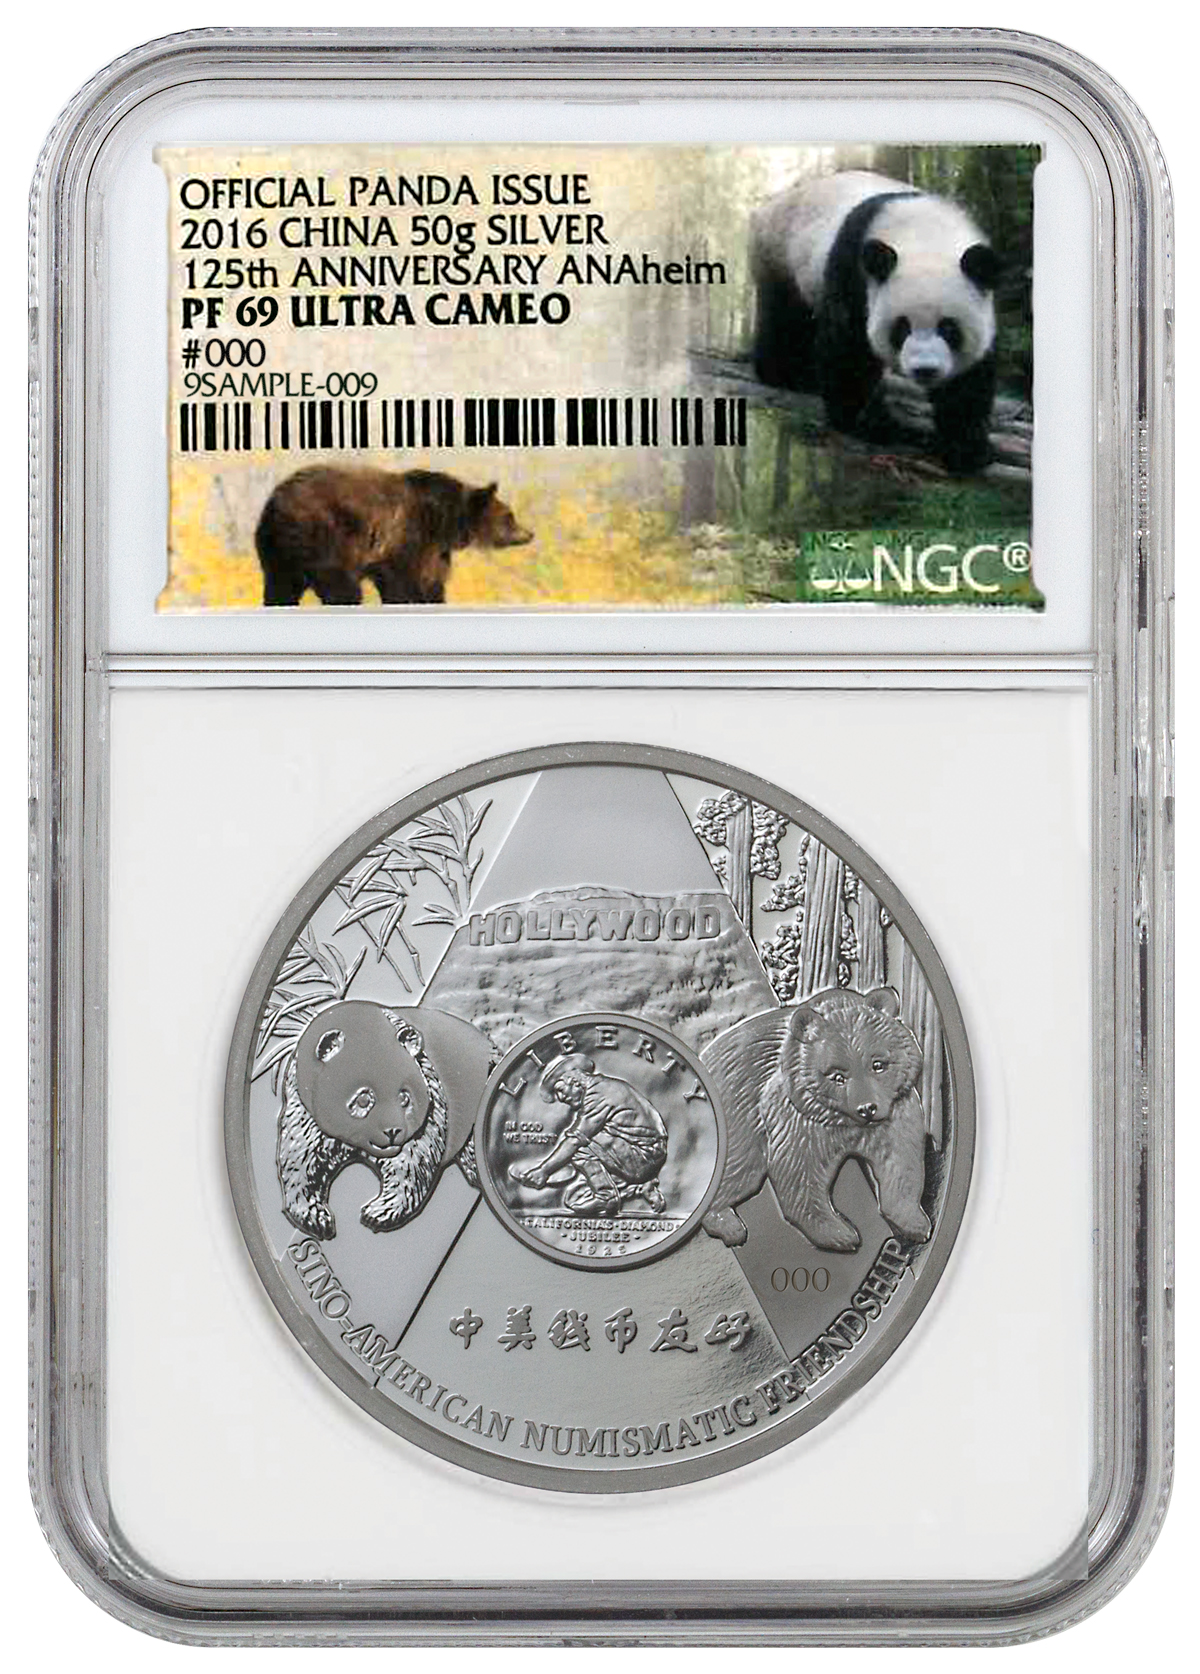 2016 China Anaheim ANA World's Fair of Money Silver Panda 50 g Silver Proof Medal NGC PF69 UC (Exclusive ANA Panda Label)